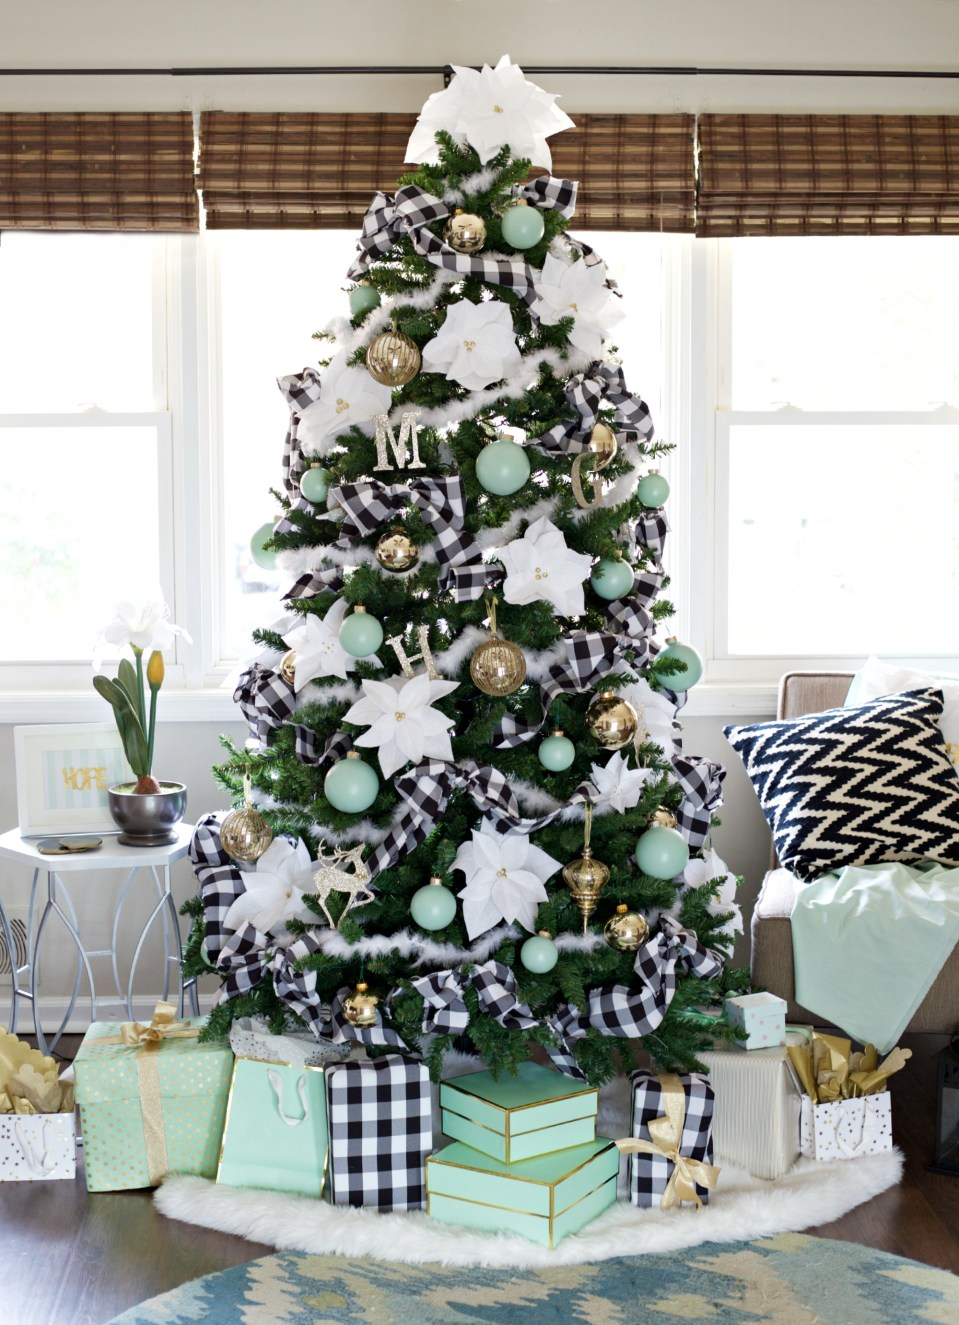 Black and White Flannel Pattern Garland - Modern Christmas Tree With White And Turquoise Blue Accents